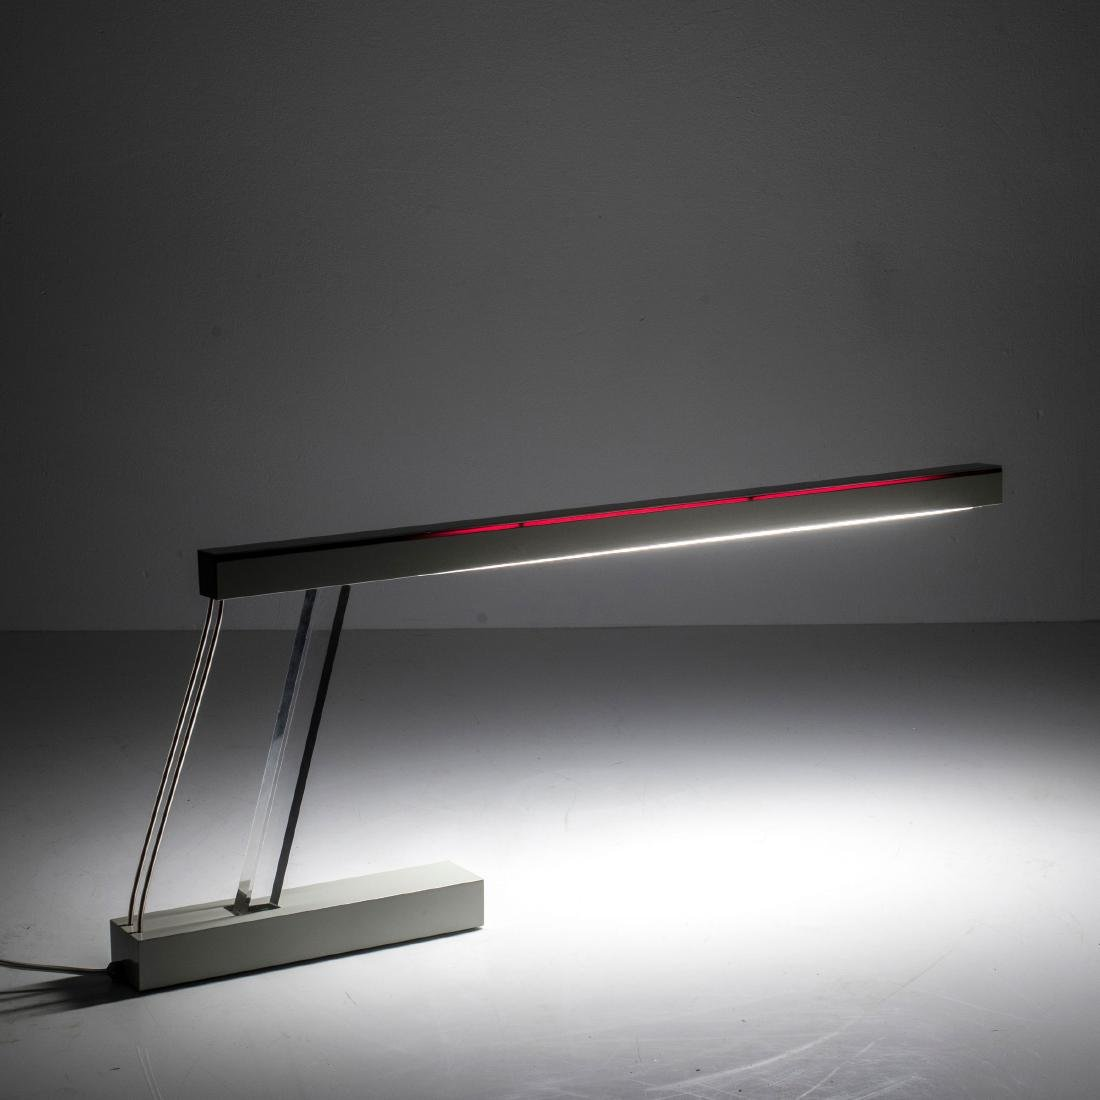 Max Rond (attributed) Table light, c. 1965 - 2